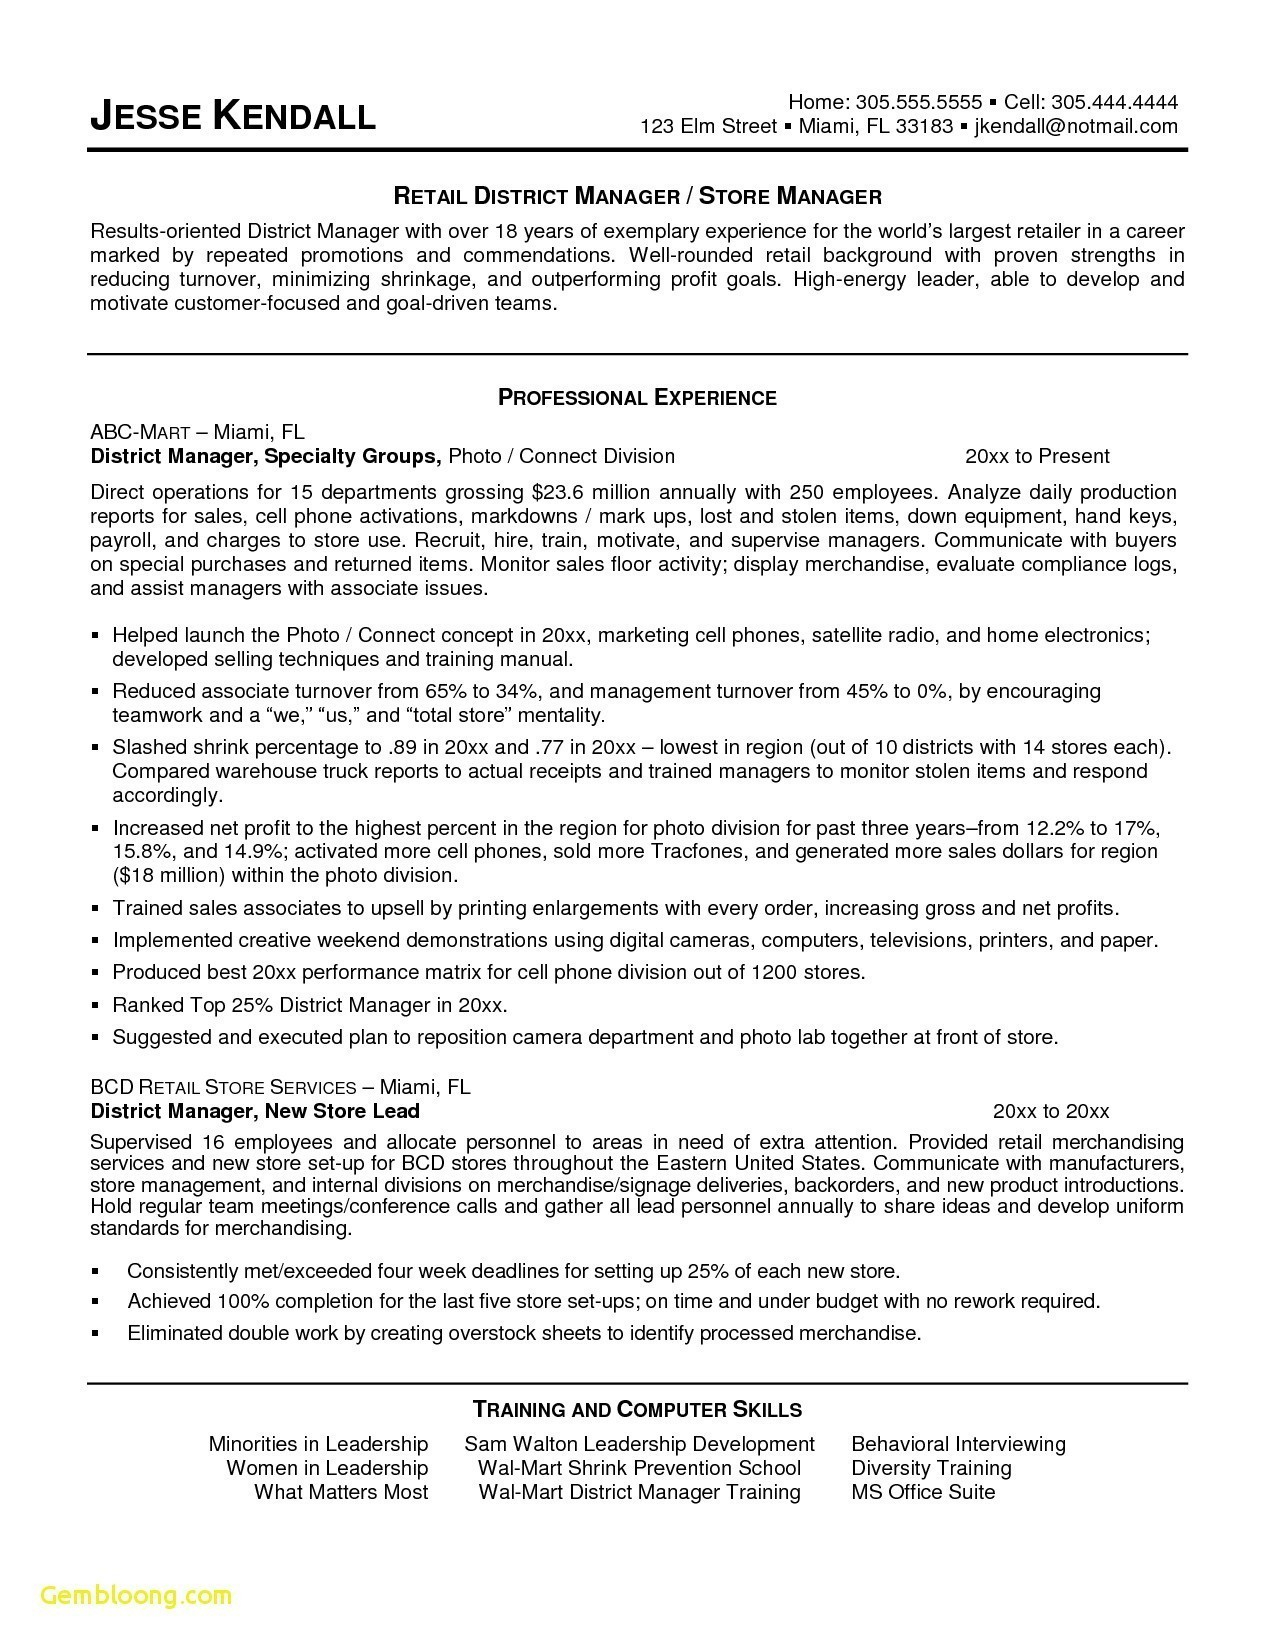 Sample Resume Real Estate Bio Examples - 18 Sample Resume Real Estate Bio Examples